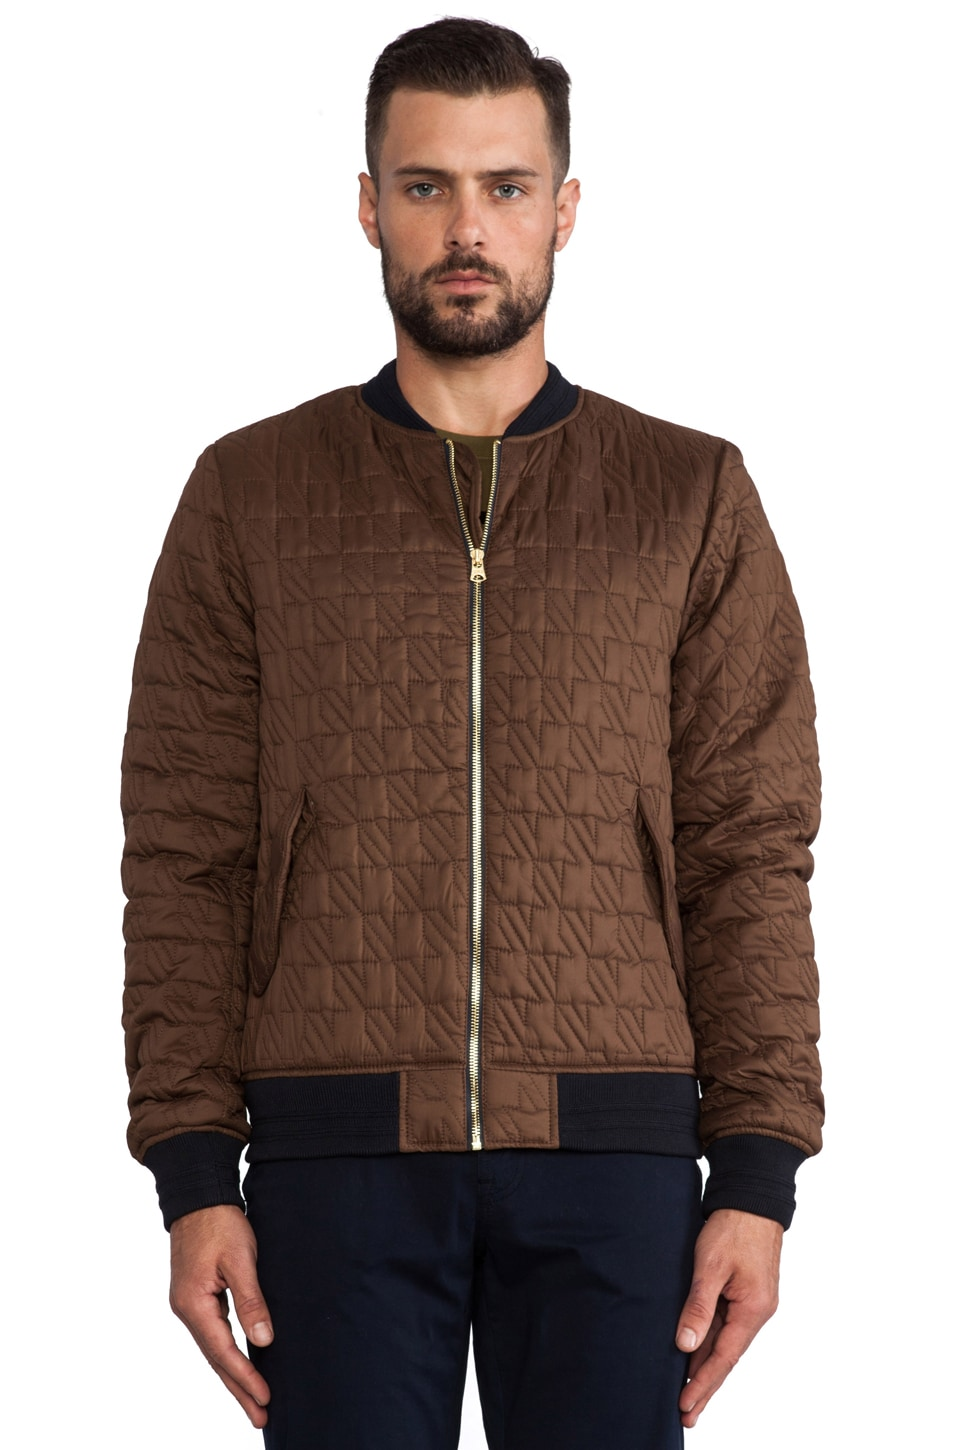 Scotch & Soda Quilted Bomber Jacket in Brown | REVOLVE